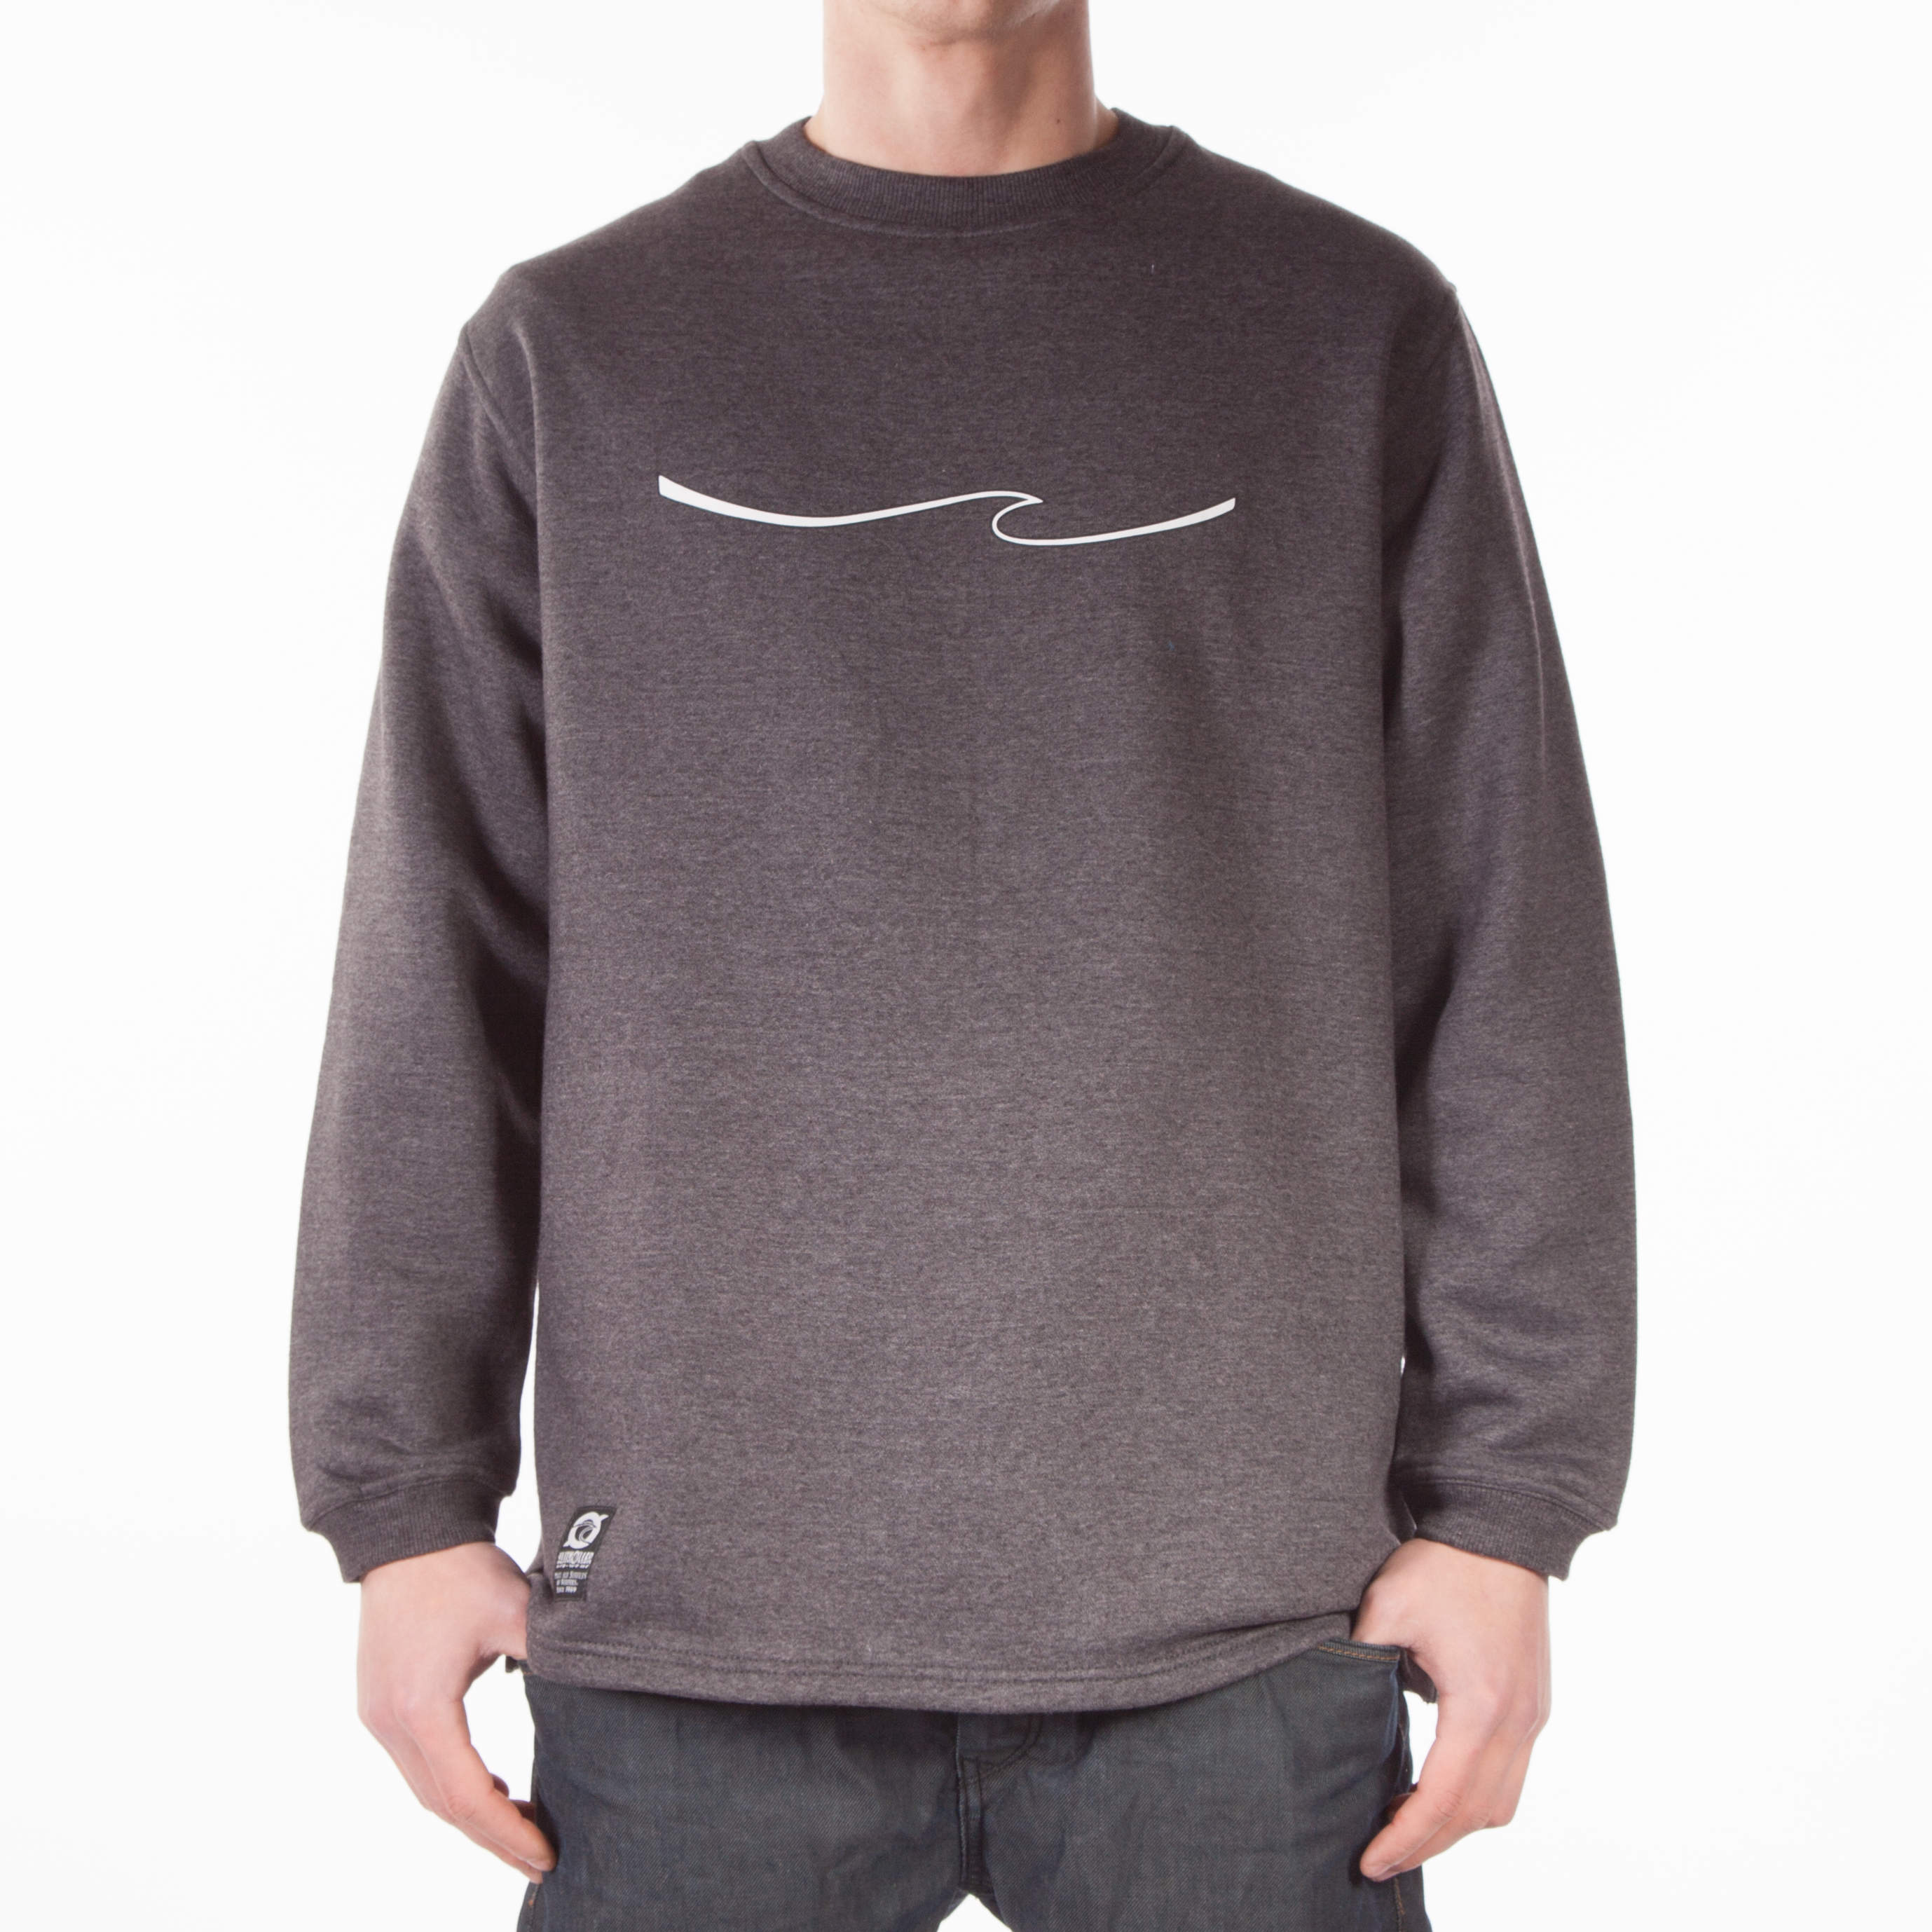 SALE: Sweatshirt Ørhage Light grey, Dark grey and Navy.